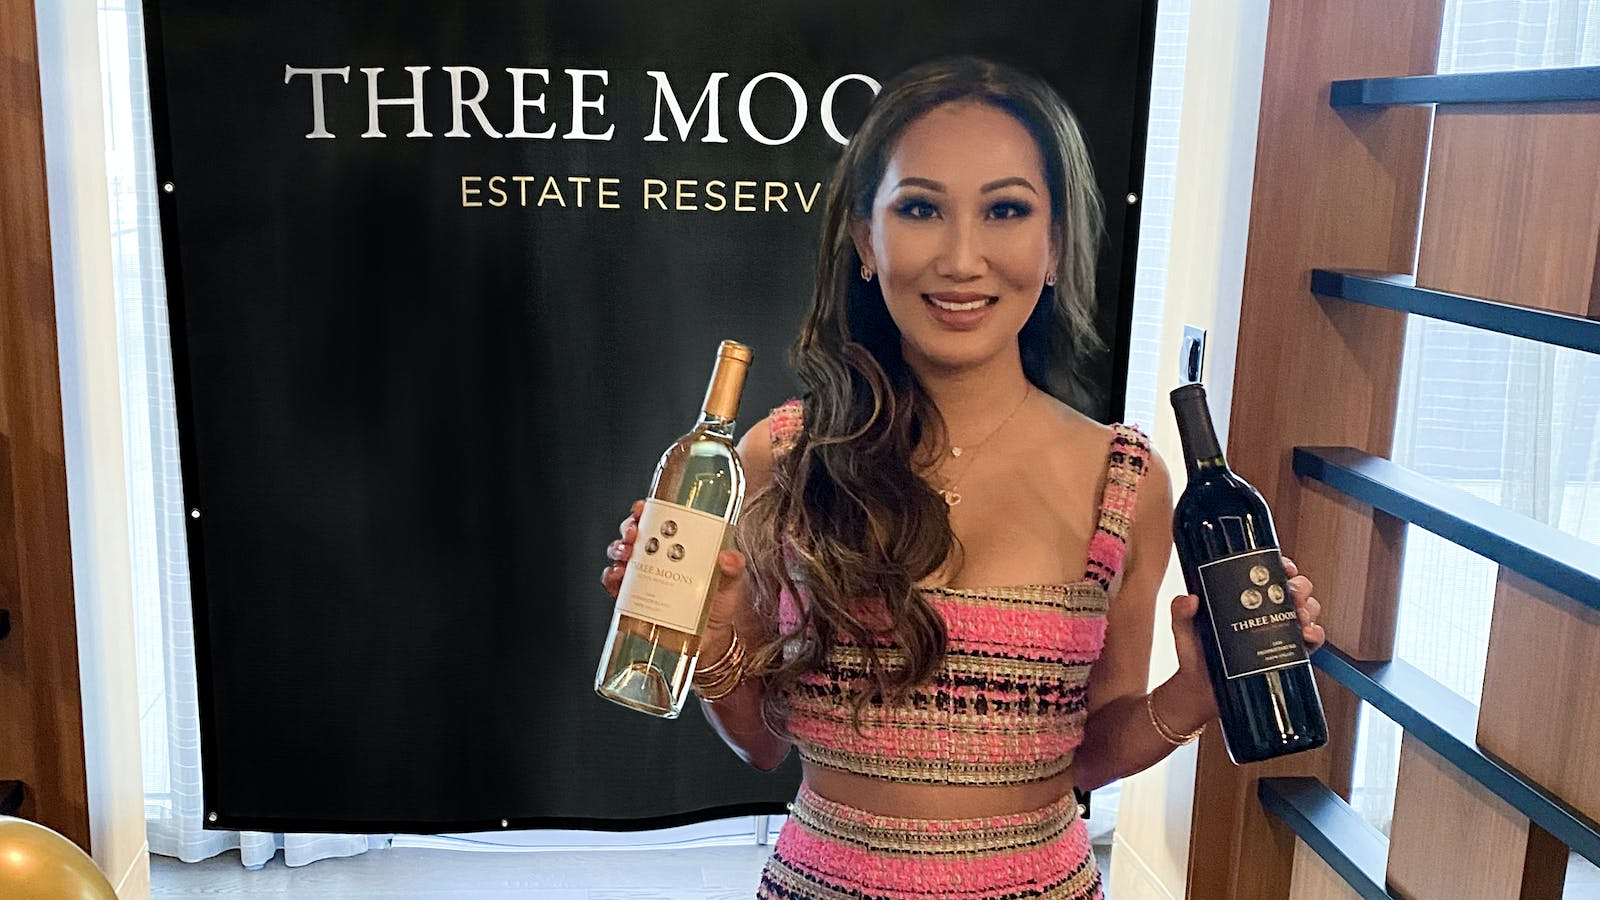 Newest Real Housewines: Tiffany Moon's Three Moons, Bethenny Frankel's Forever Young